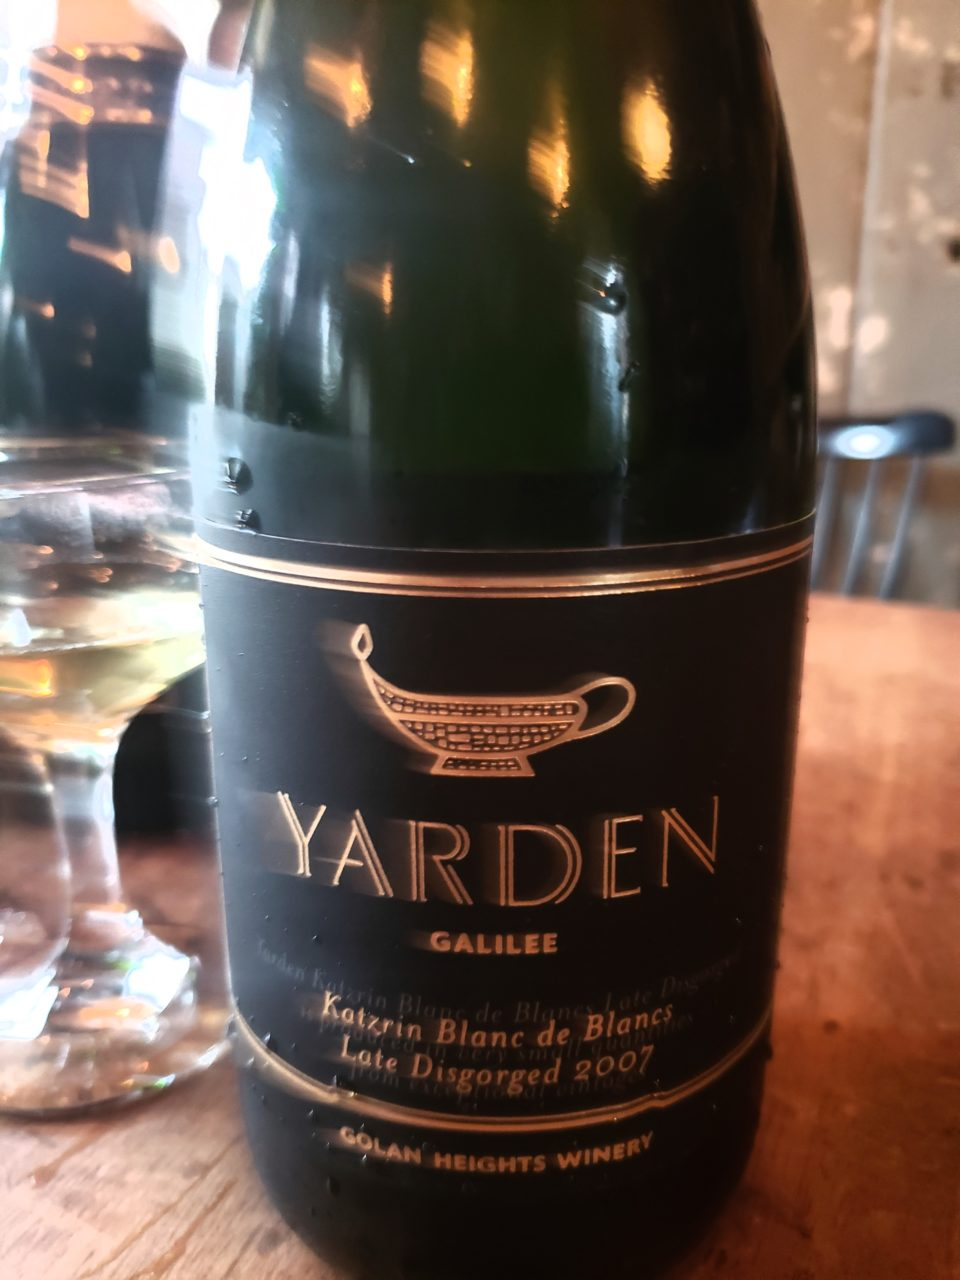 Yarden Wines: Israeli Wines Perfect For Every Occasion